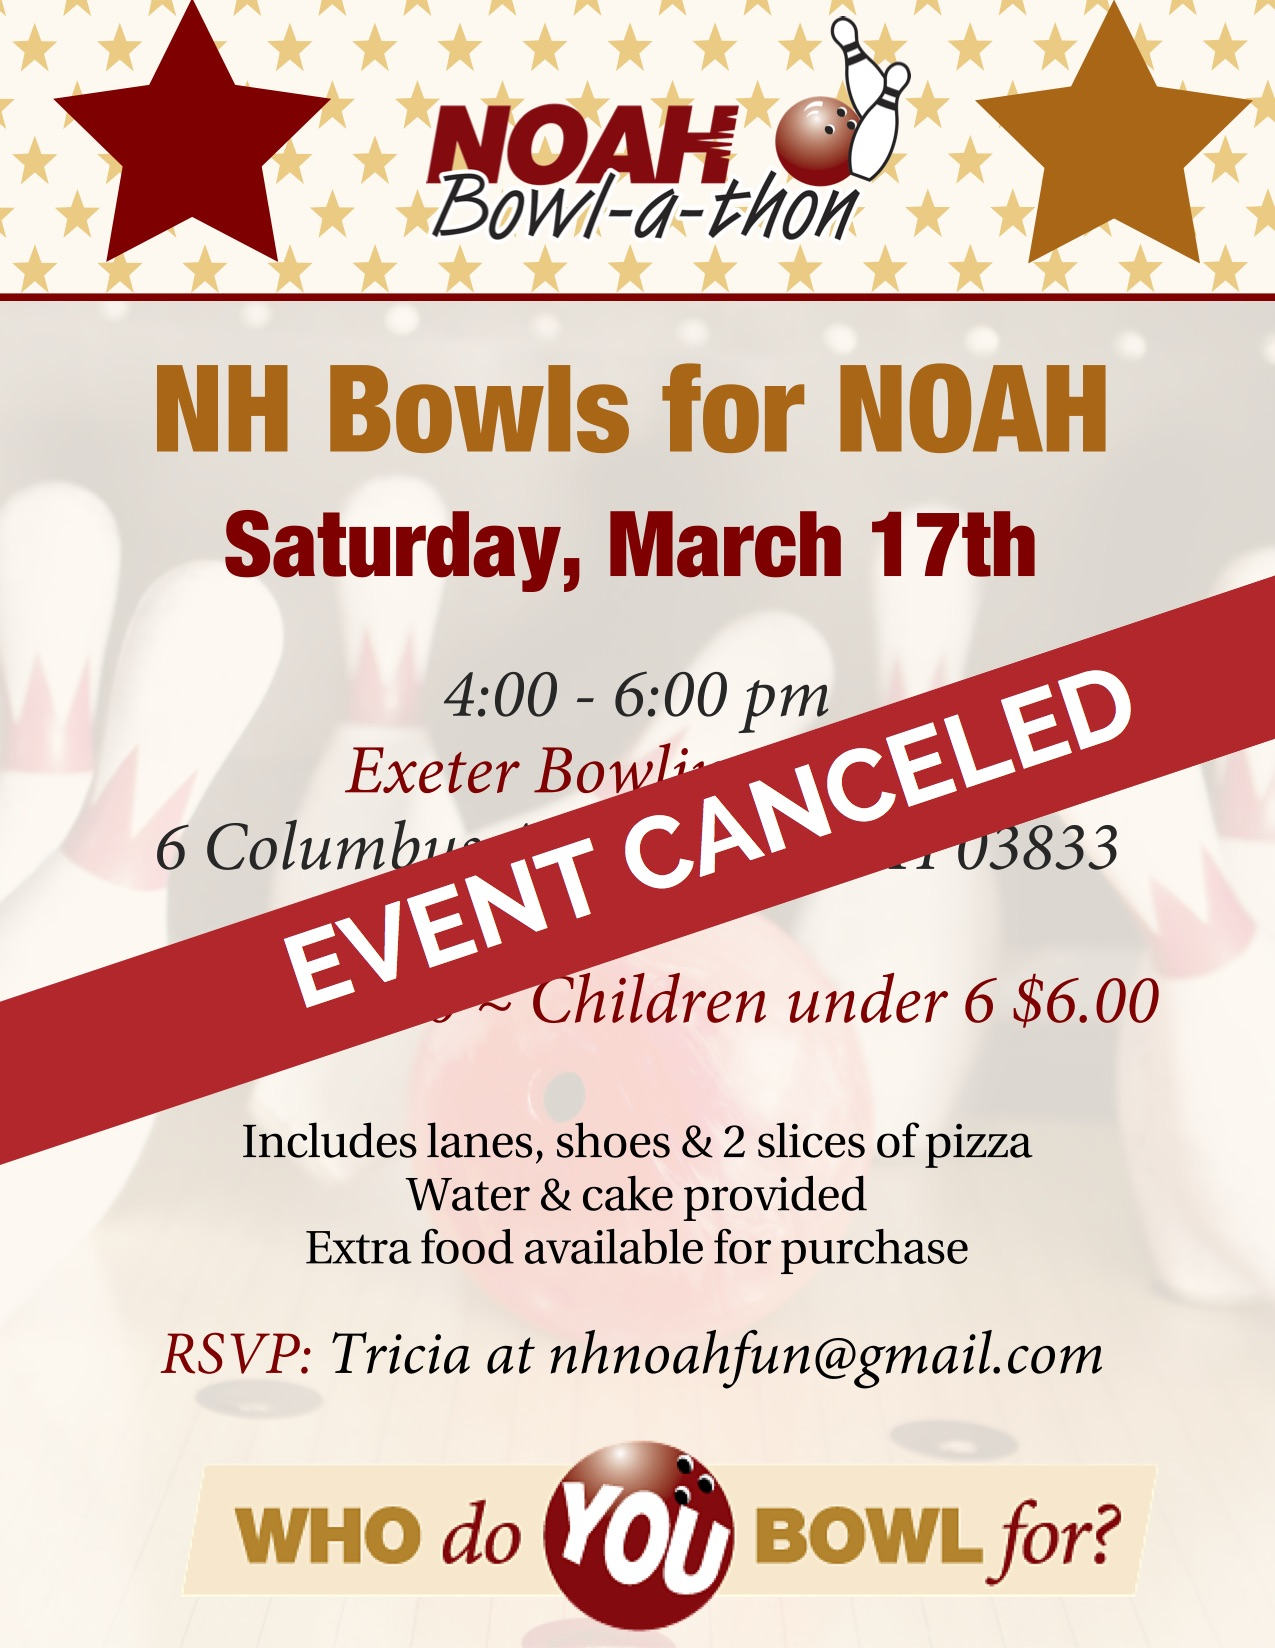 NH Bowls for NOAH - Exeter, NH